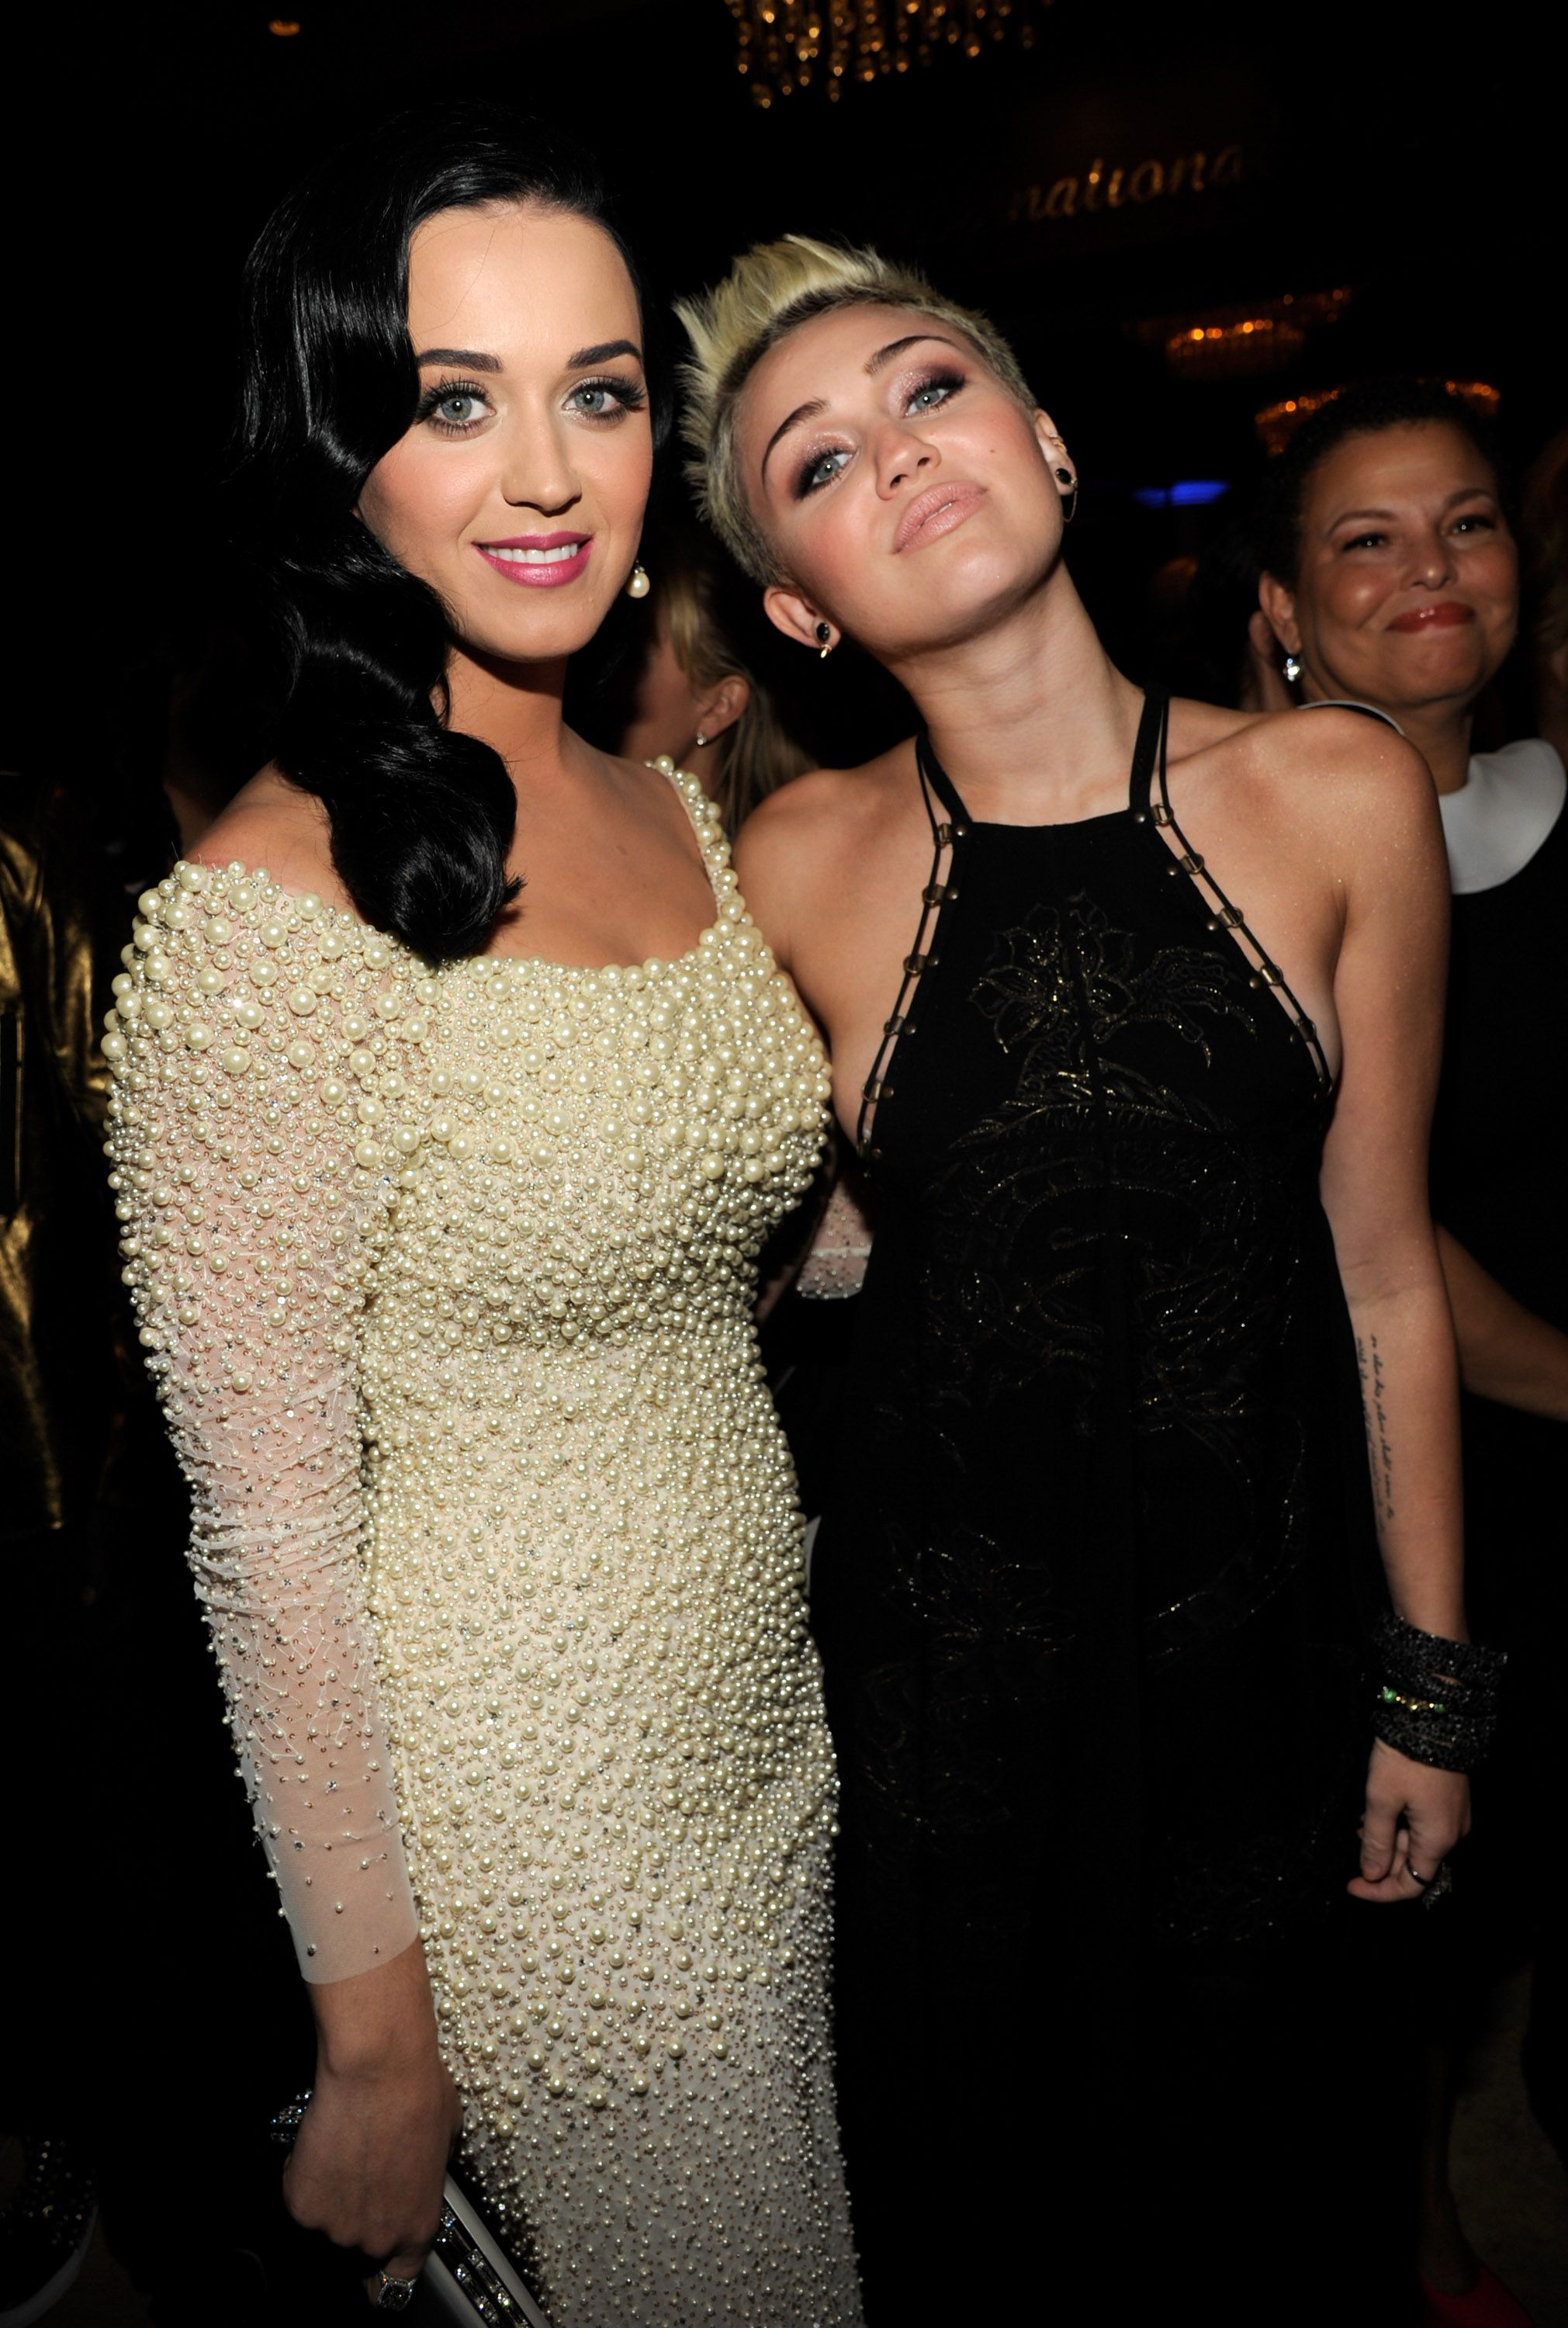 Katy Perry to Miley Cyrus: I'm Gonna Give You the Biggest Spanking'